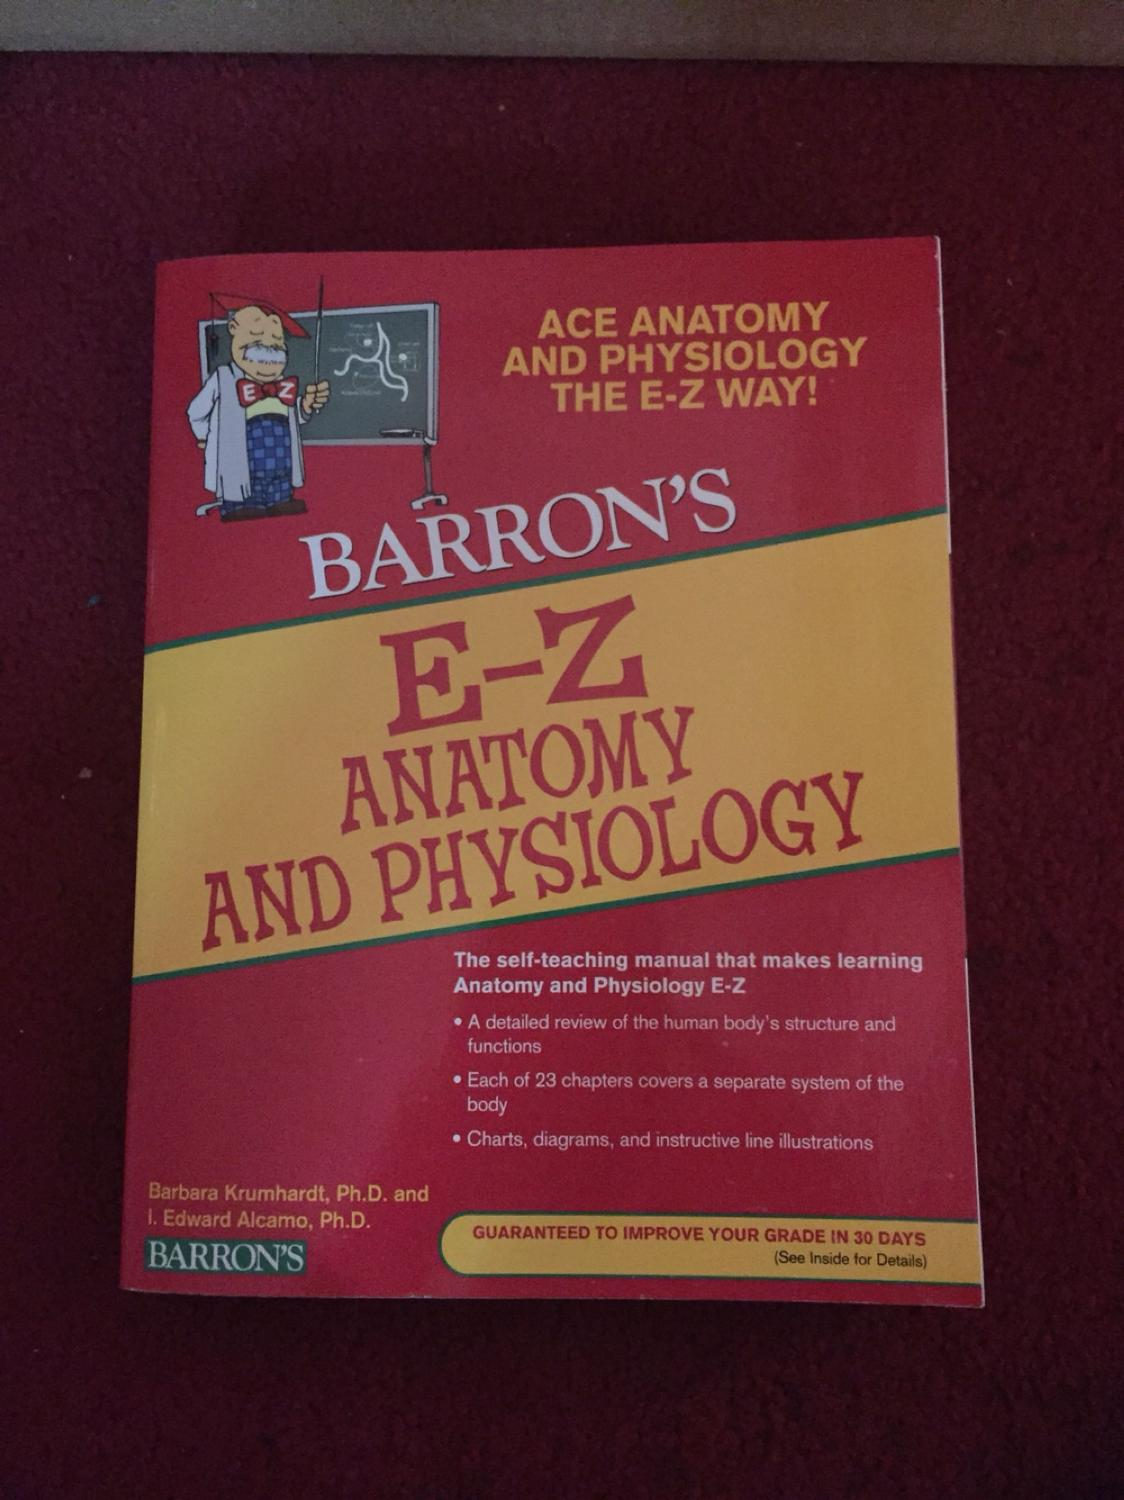 Best E-z Anatomy And Physiology Book for sale in Cypress, Texas for 2018